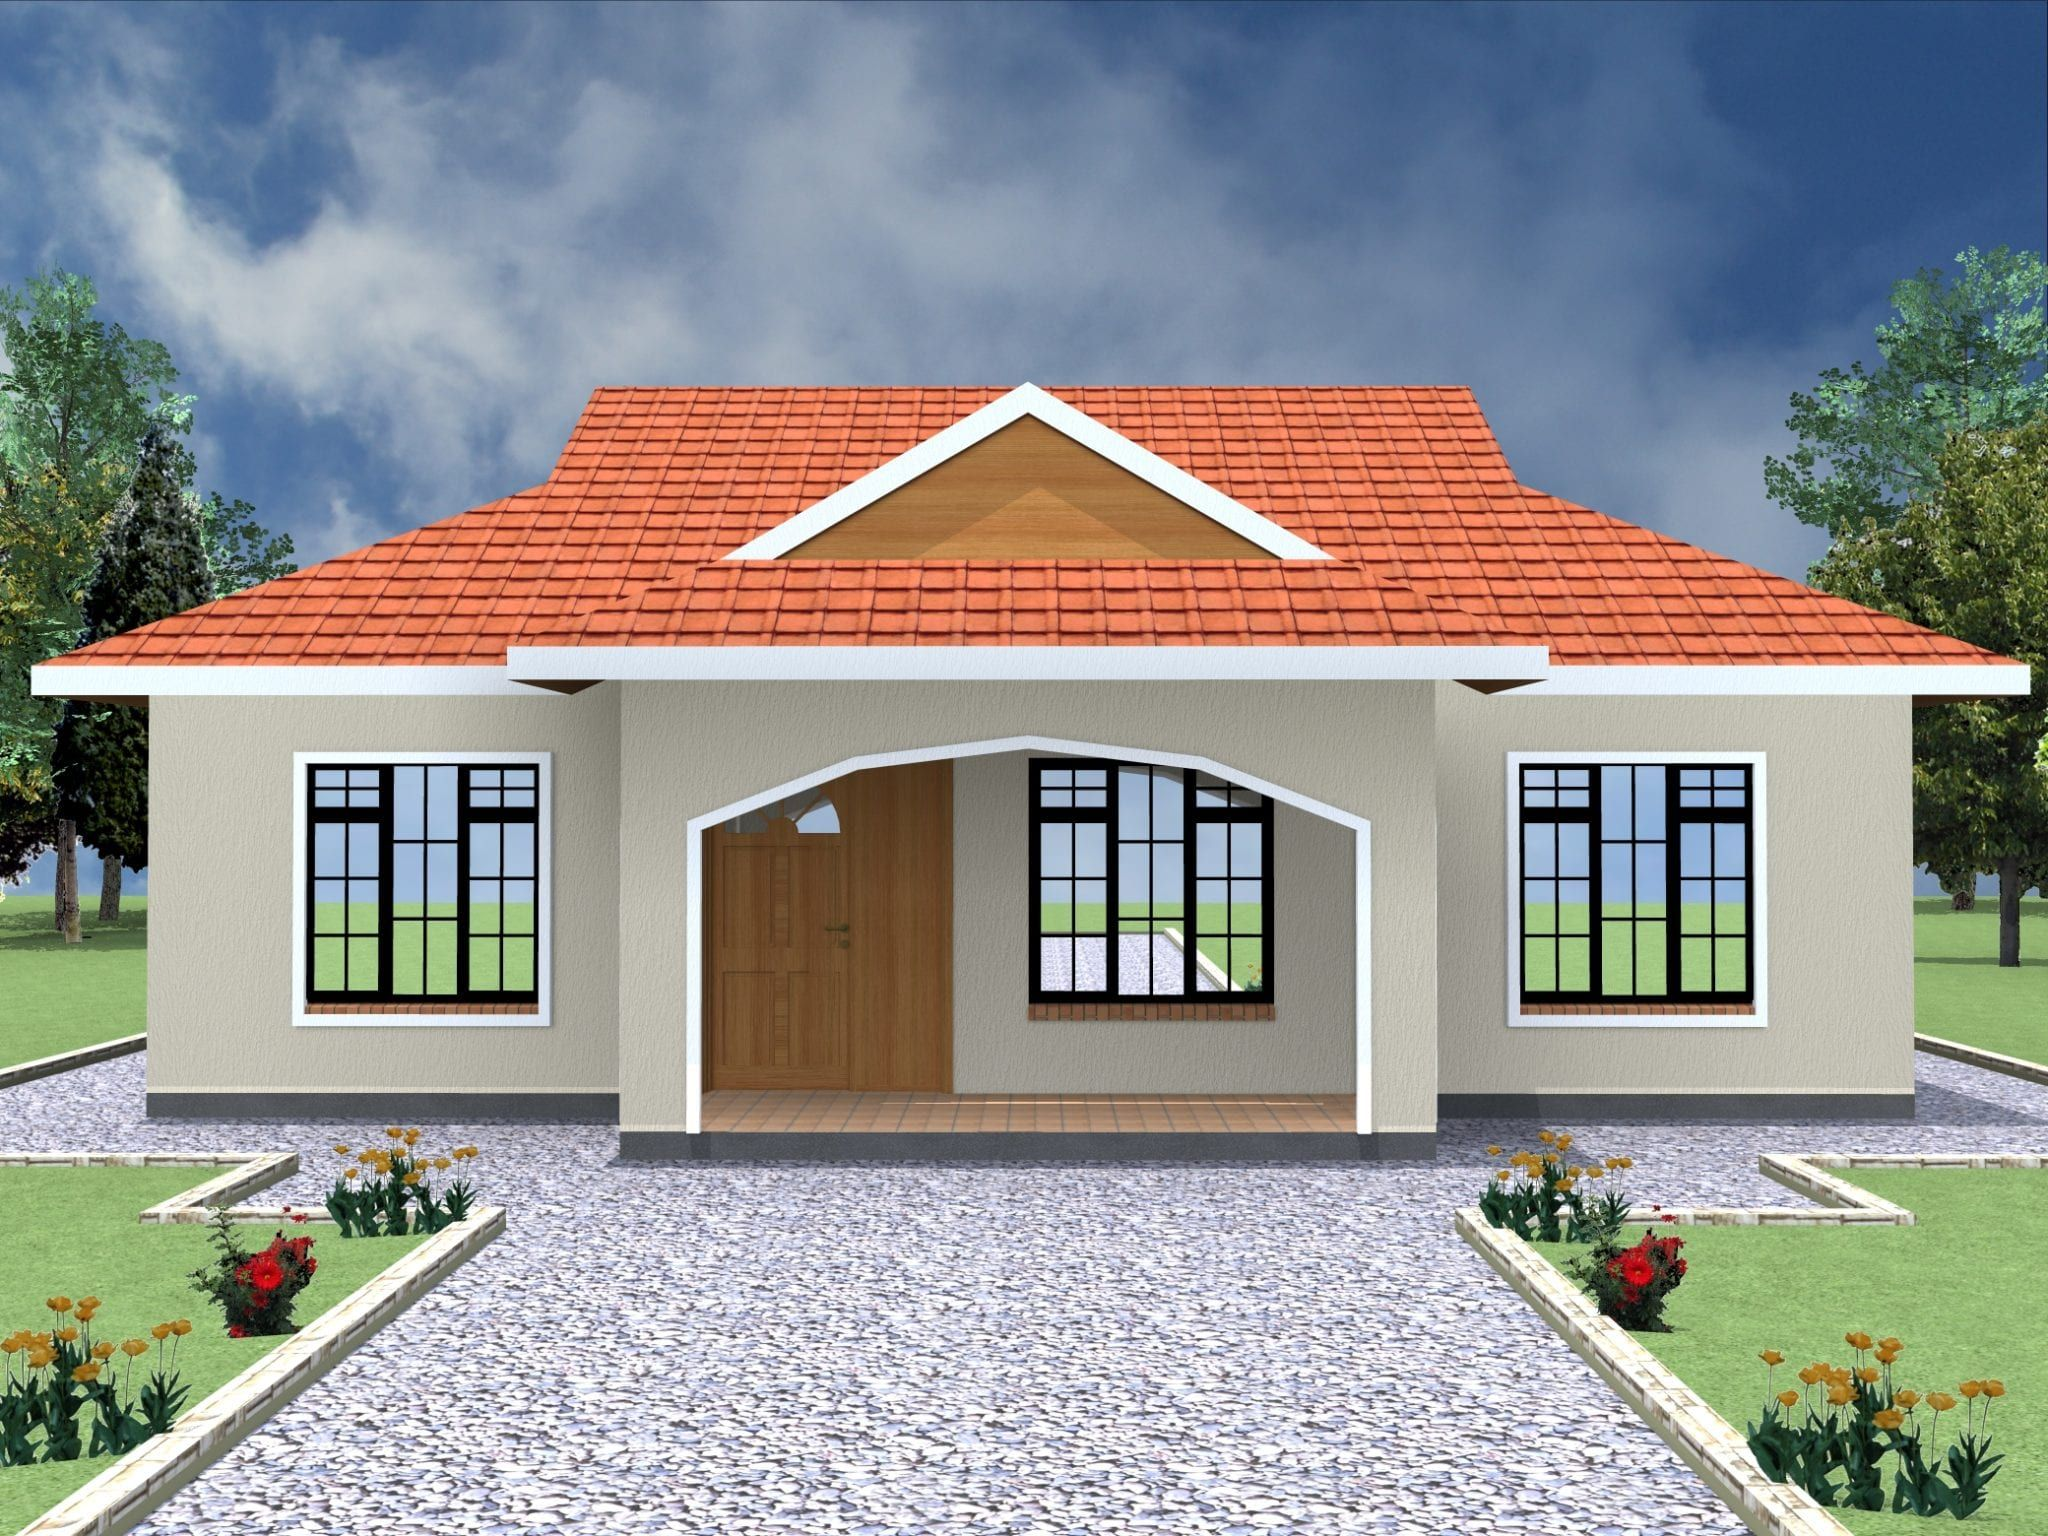 2 Bedroom House Plans In Kenya Two Bedroom House Design 2 Bedroom House Plans Bedroom House Plans